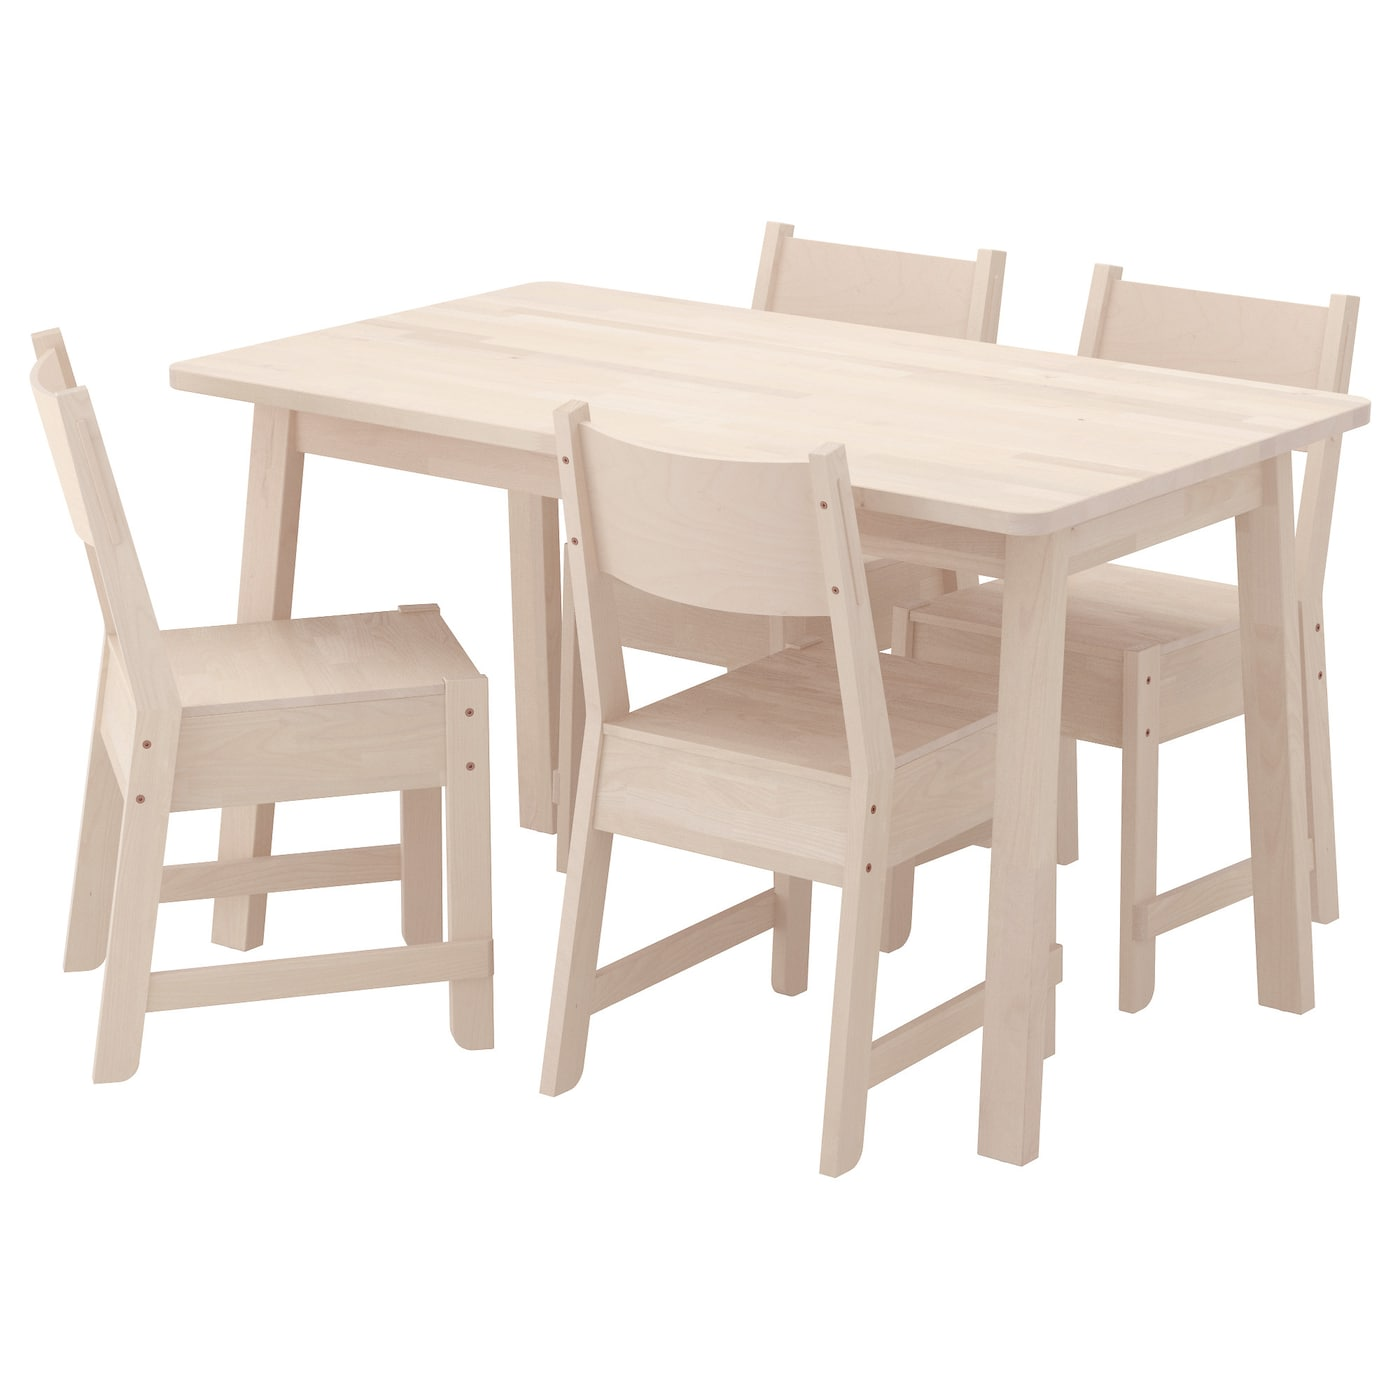 NORR197KERNORR197KER Table and 4 chairs White birchwhite  : norrC3A5ker norrC3A5ker table and 4 chairs white birch white birch0375705pe553279s5 from www.ikea.com size 2000 x 2000 jpeg 299kB